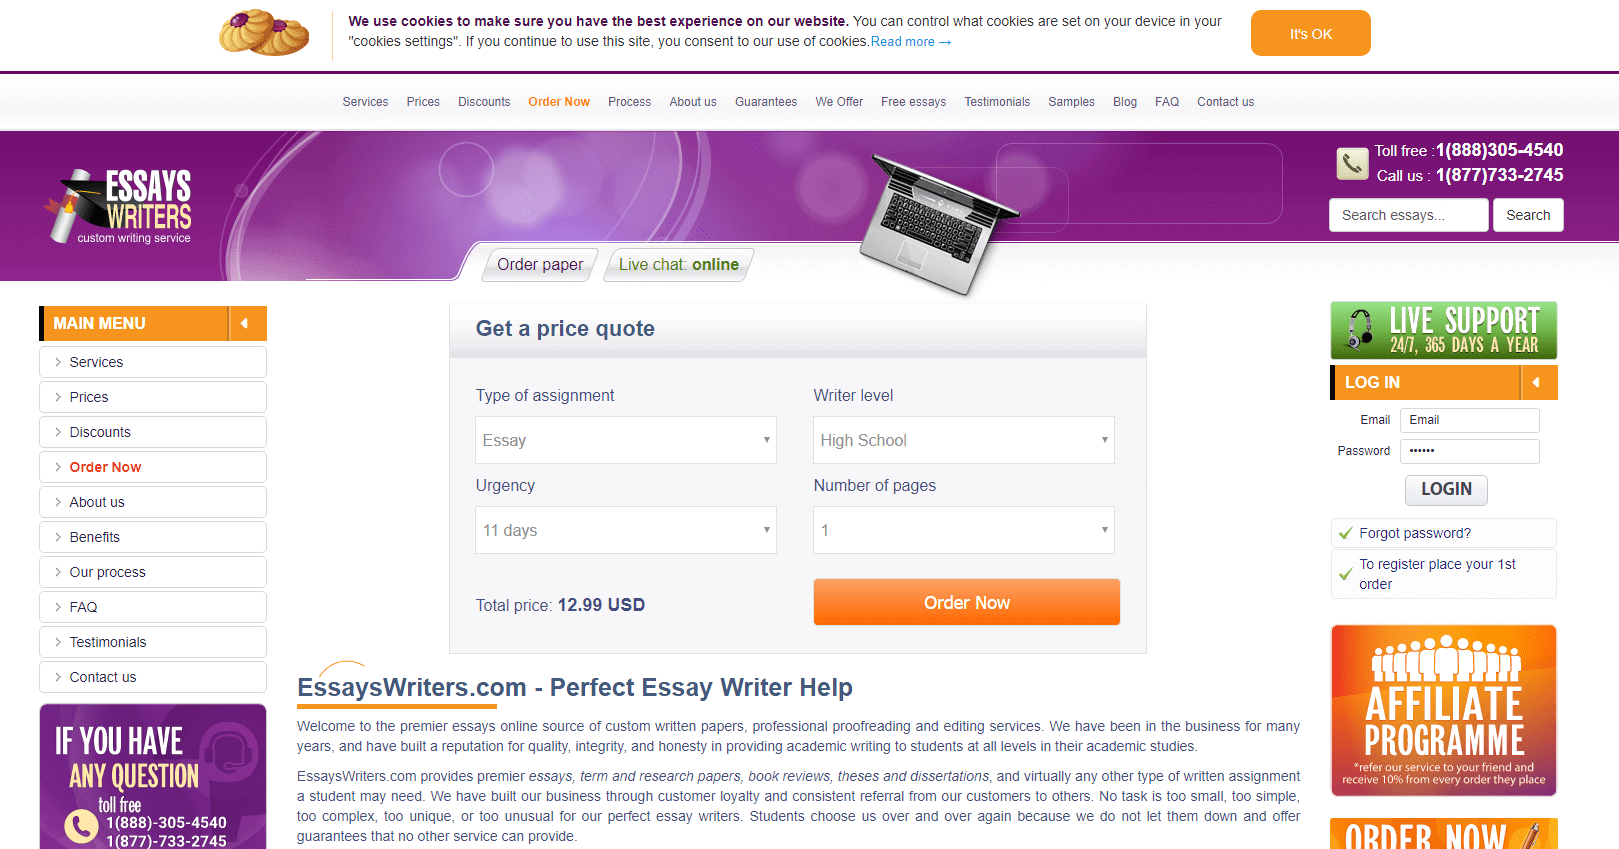 EssaysWriters.com Review